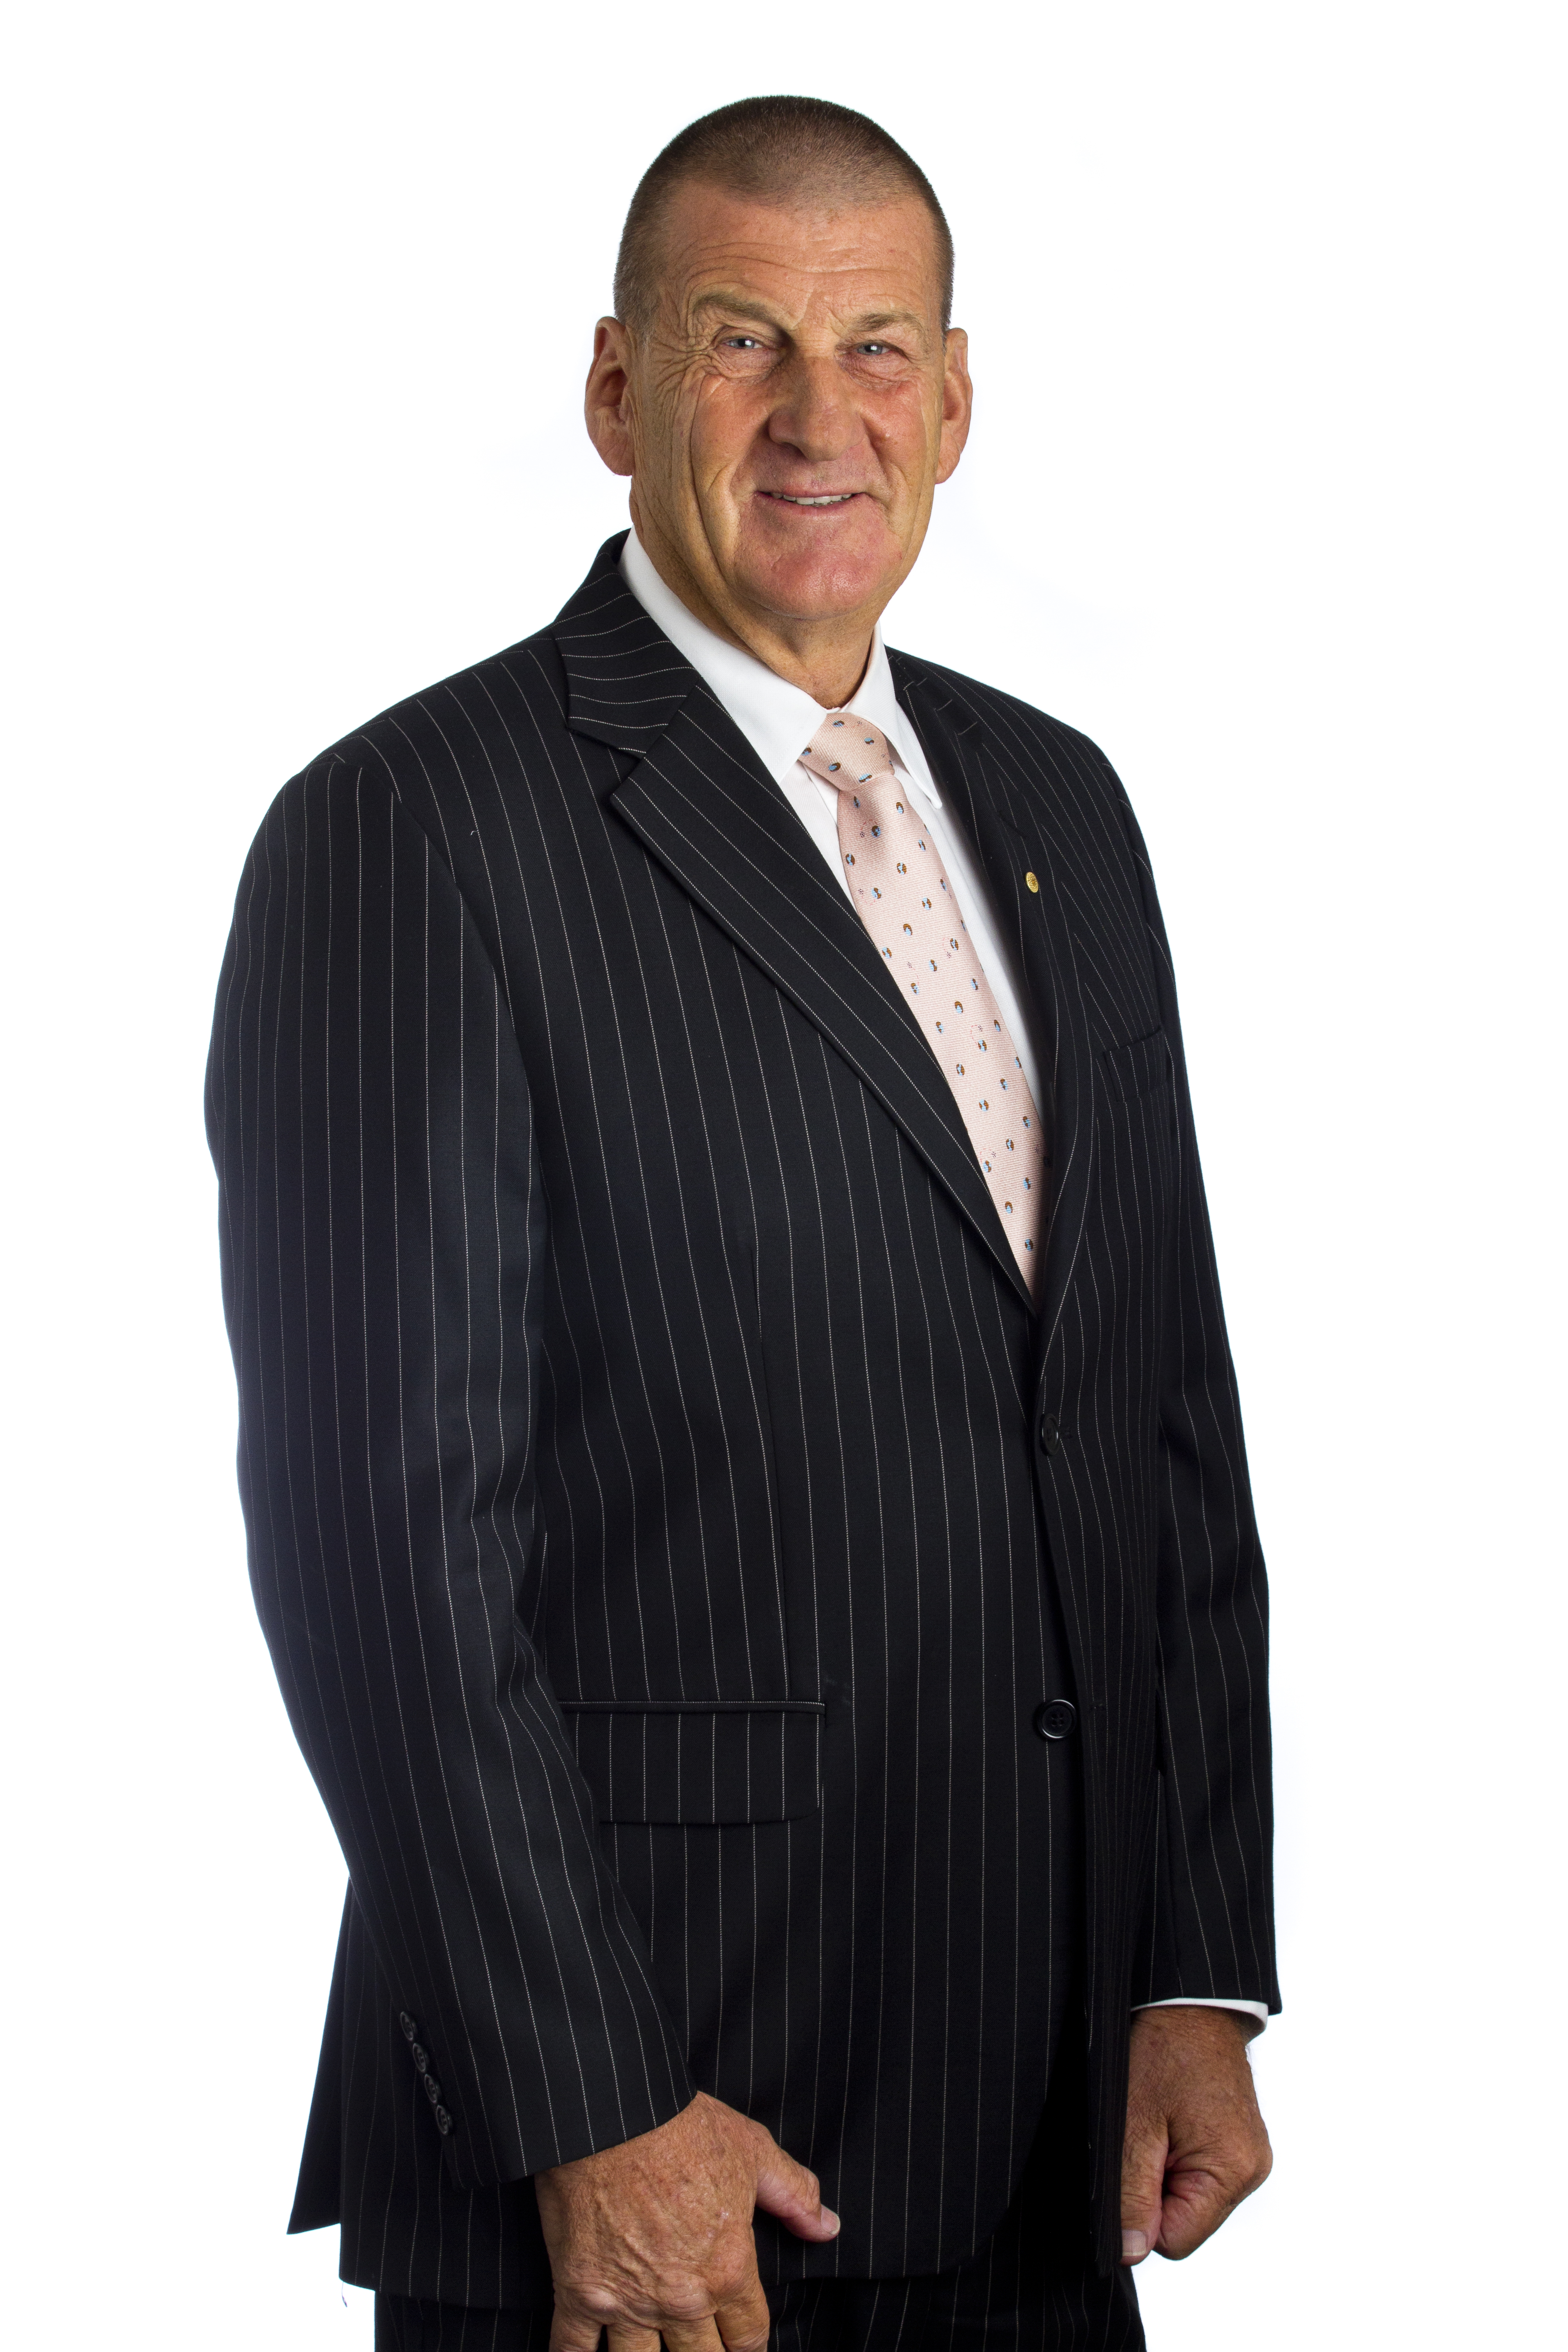 The Hon Jeff Kennett AC